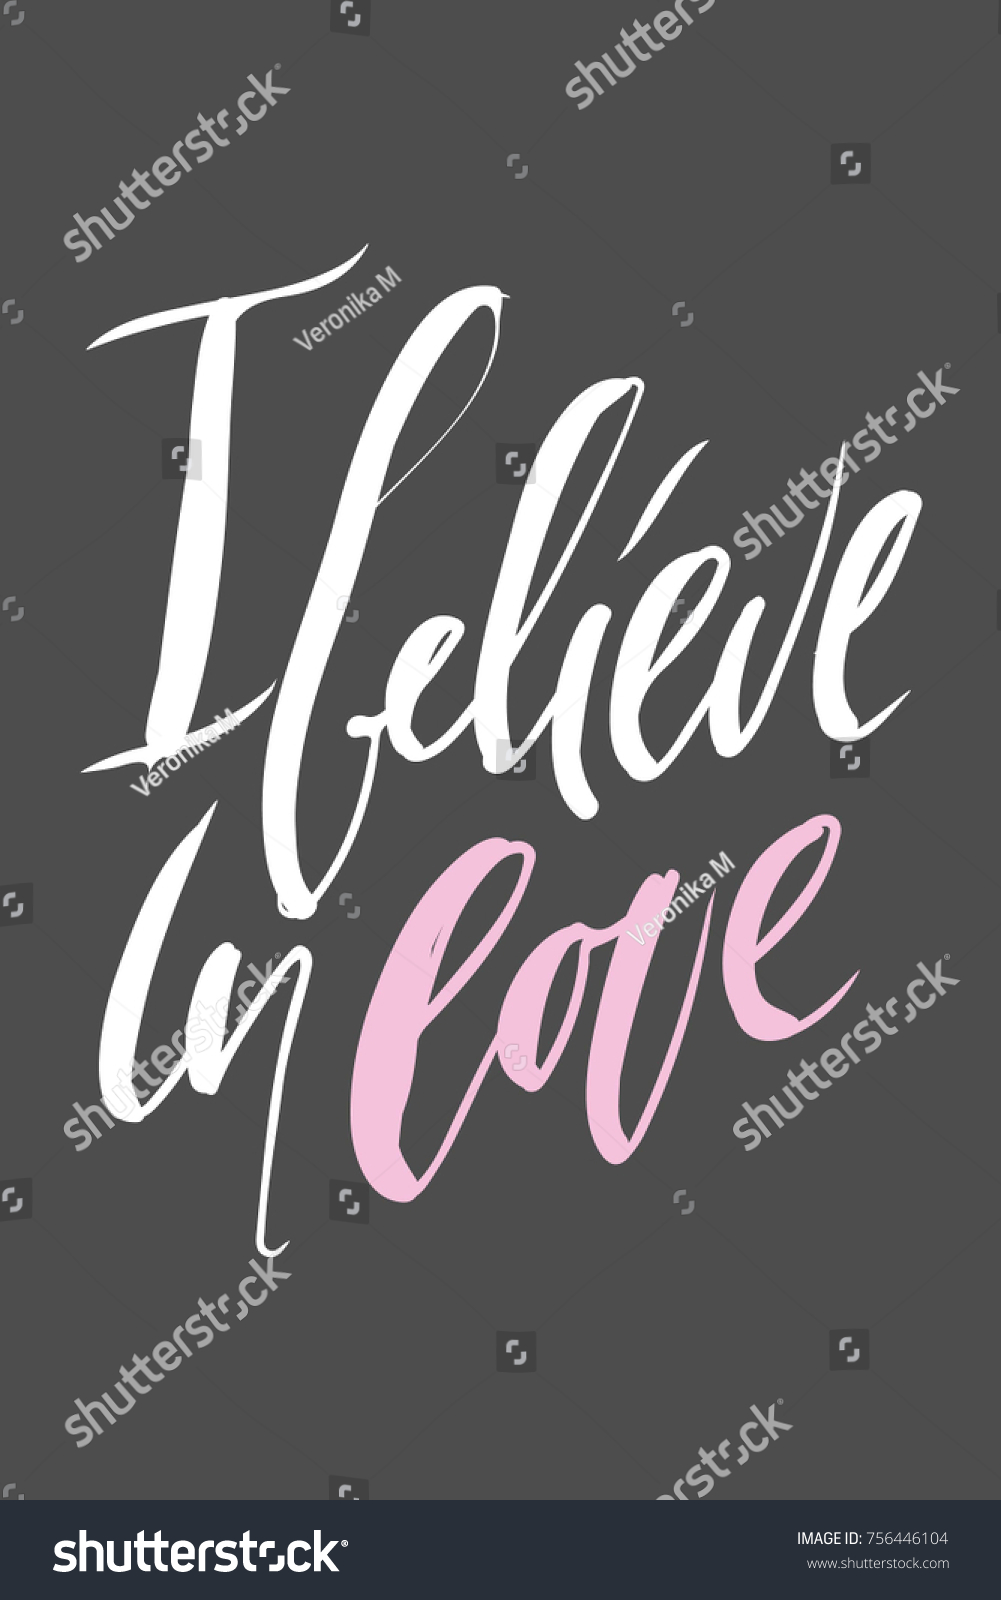 Believe In Love Quotes Believe Love Motivational Quotes About Love Stock Vector 756446104